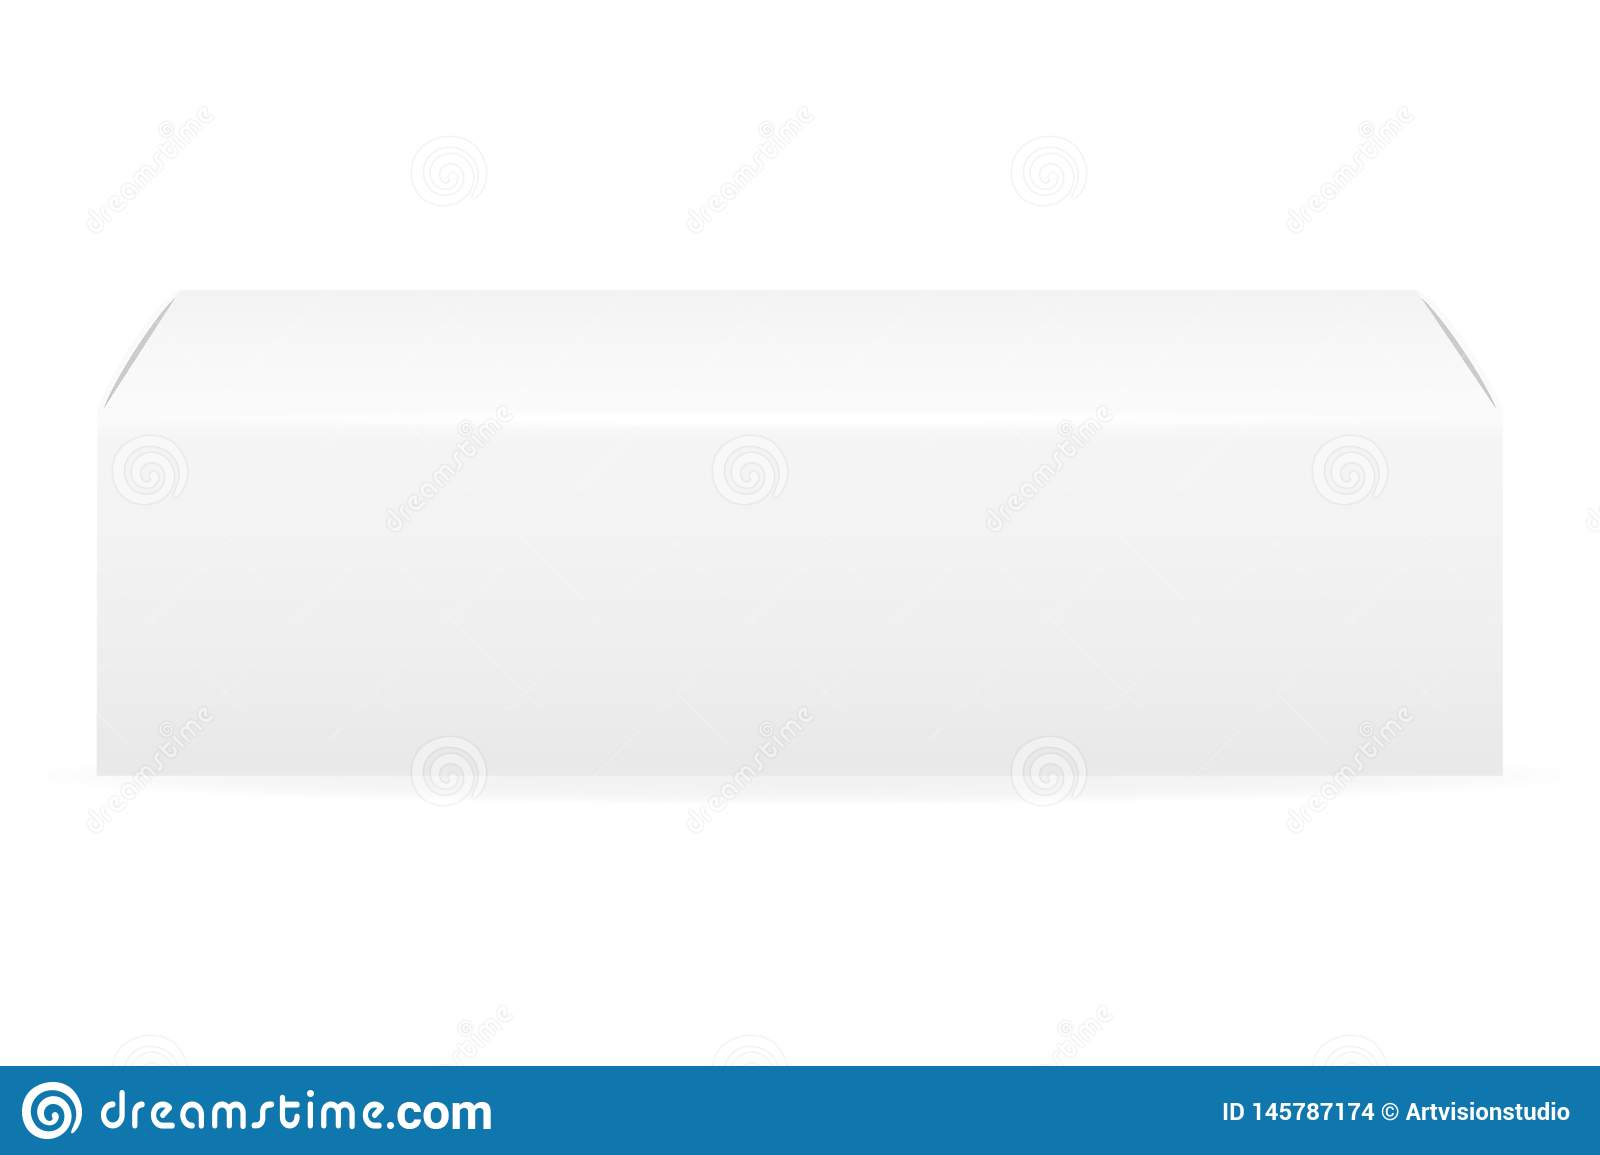 Box Packaging Of Toothpaste Empty Template For Design Stock Vector Illustration Stock Vector Illustration Of Illustration Object 145787174